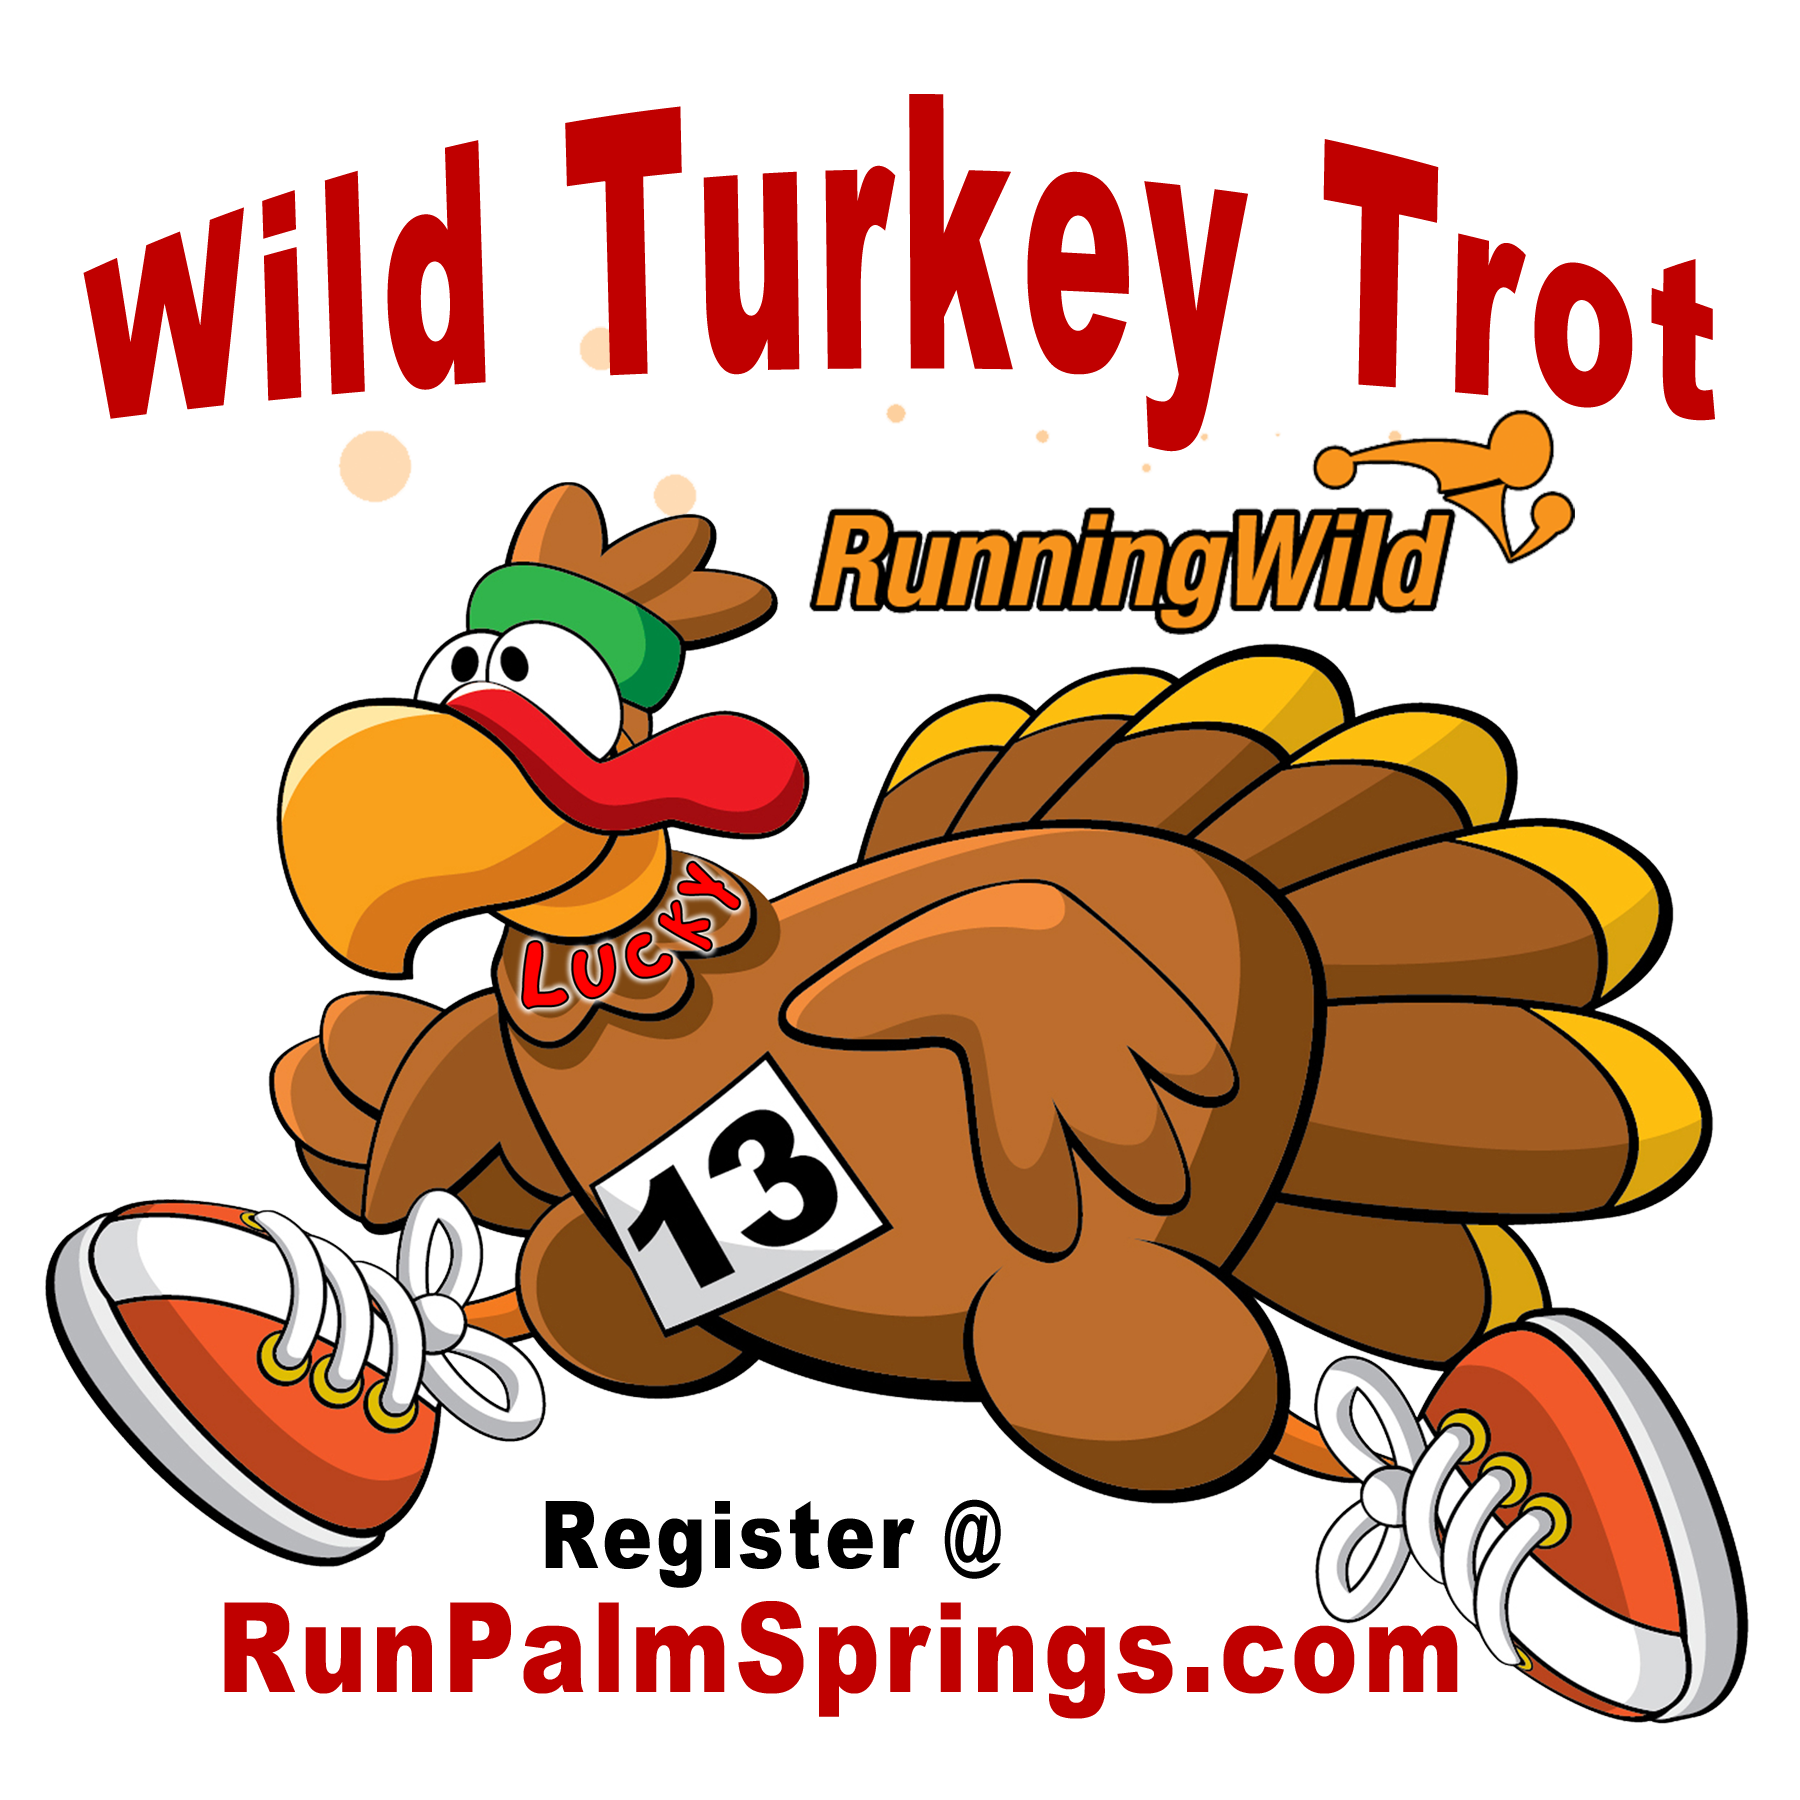 Stay safe thanksgiving travel clipart graphic black and white 2017 Running Wild's WILD TURKEY TROT 5K graphic black and white